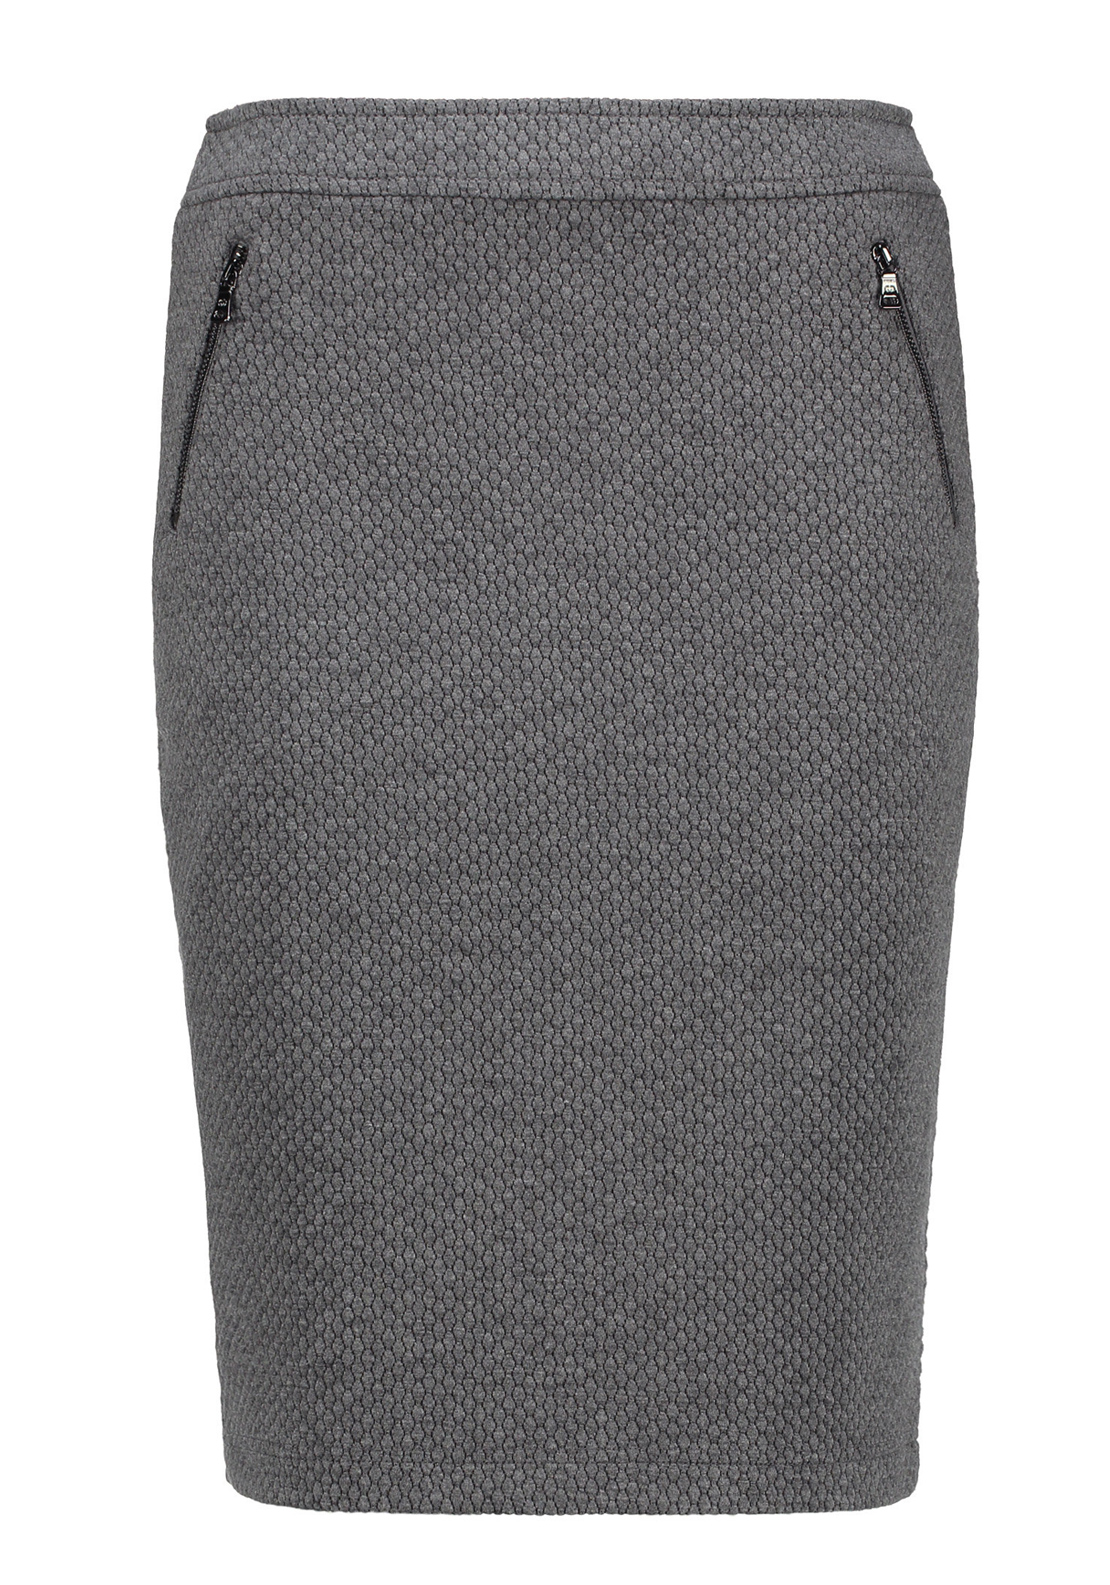 Gerry Weber Honeycomb Print Jersey Pencil Skirt, Grey